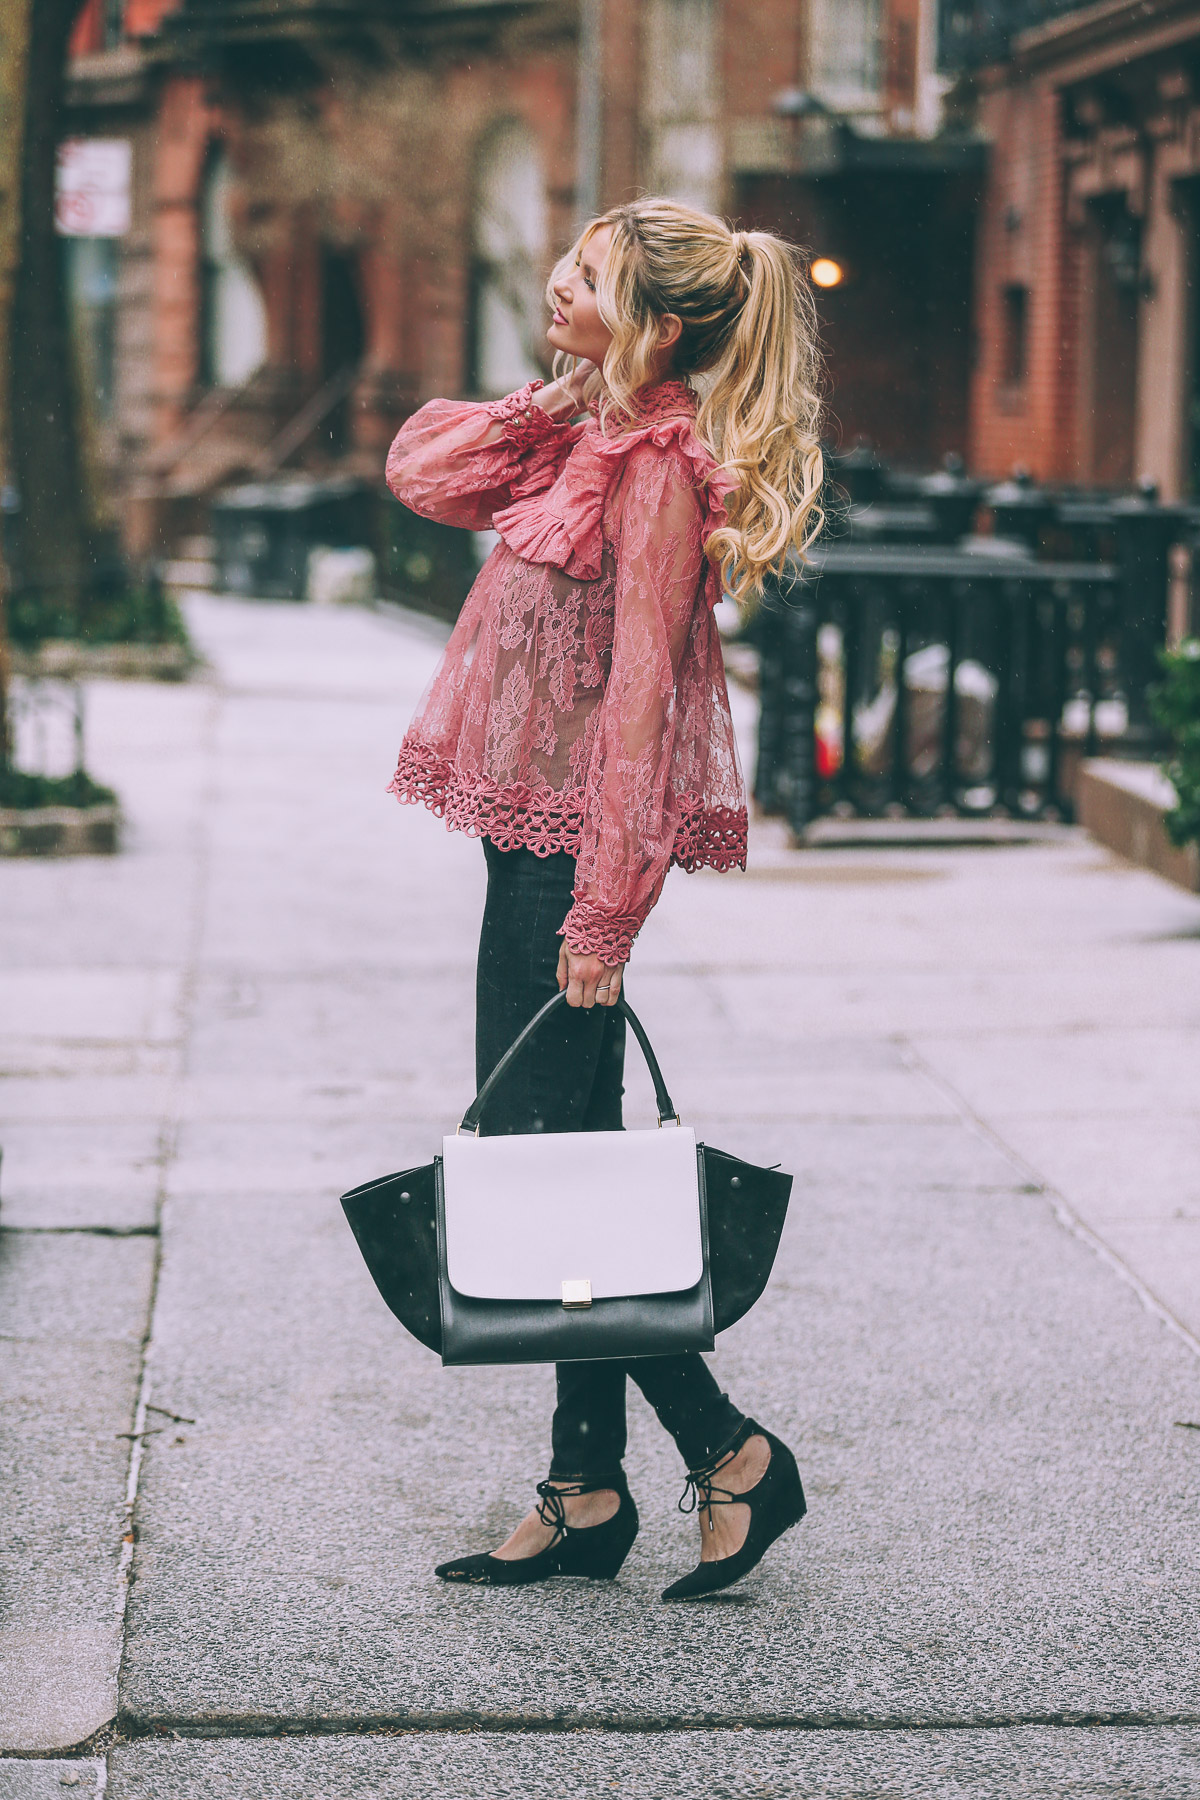 Amber Fillerup Clark is a vision in pink lace, sporting a gorgeous blouse from Zimmermann, paired with black jeans and a stylish asymmetrical monochrome bag. Blouse: Zimmermann, Jeans: J Brand, Shoes: Shopbop, Bag: Celine via Fashionphile.